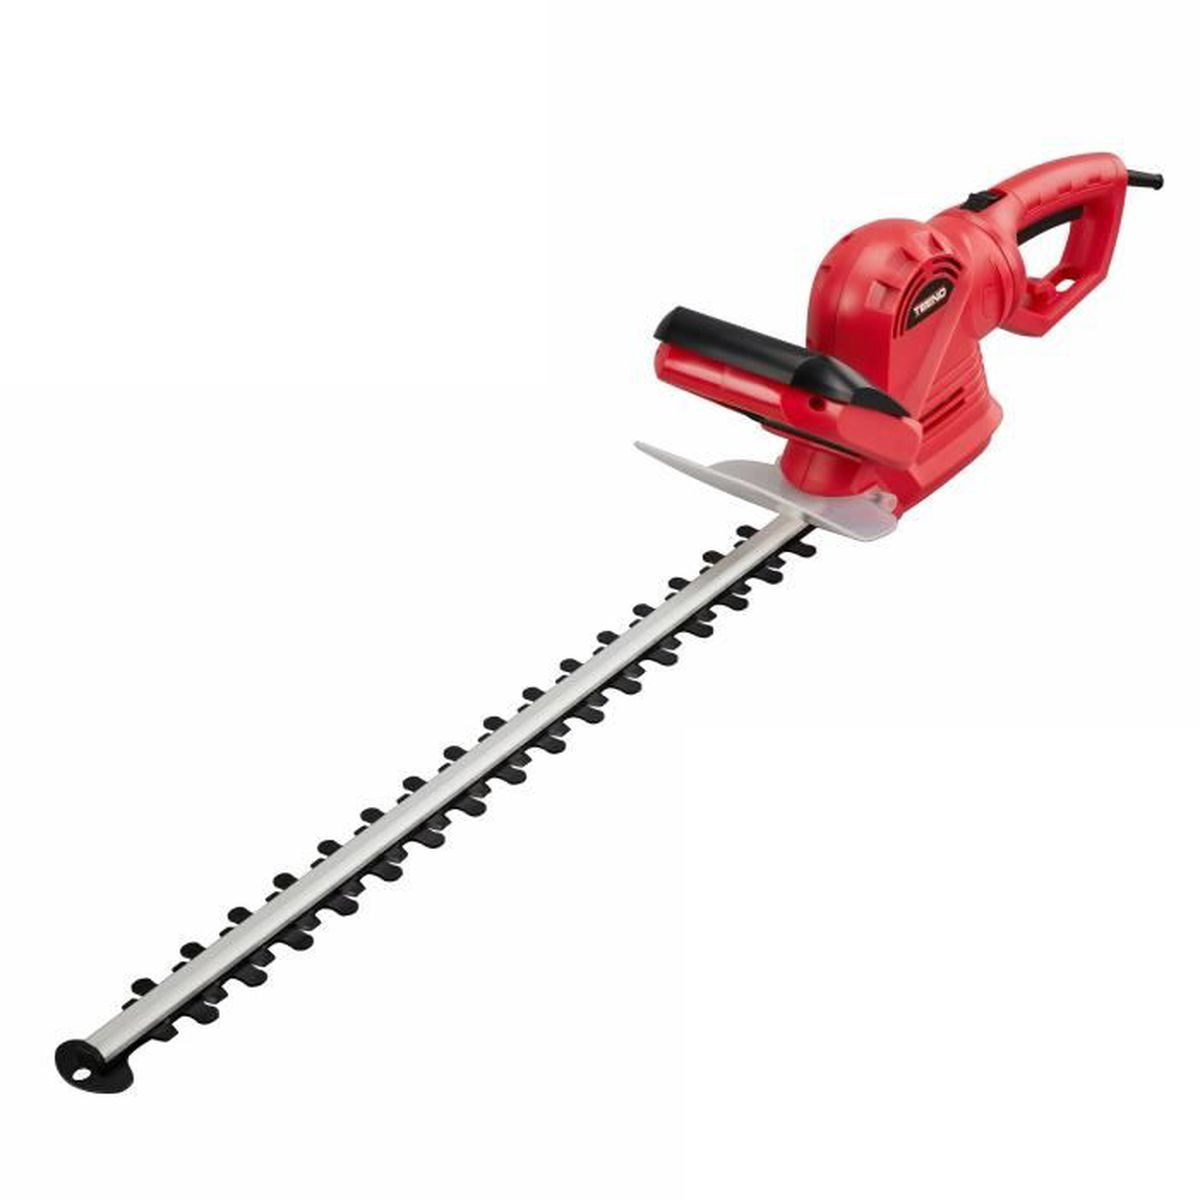 TAILLE-HAIE TEENO®Taille-haies électrique 710 W lame 610 mm